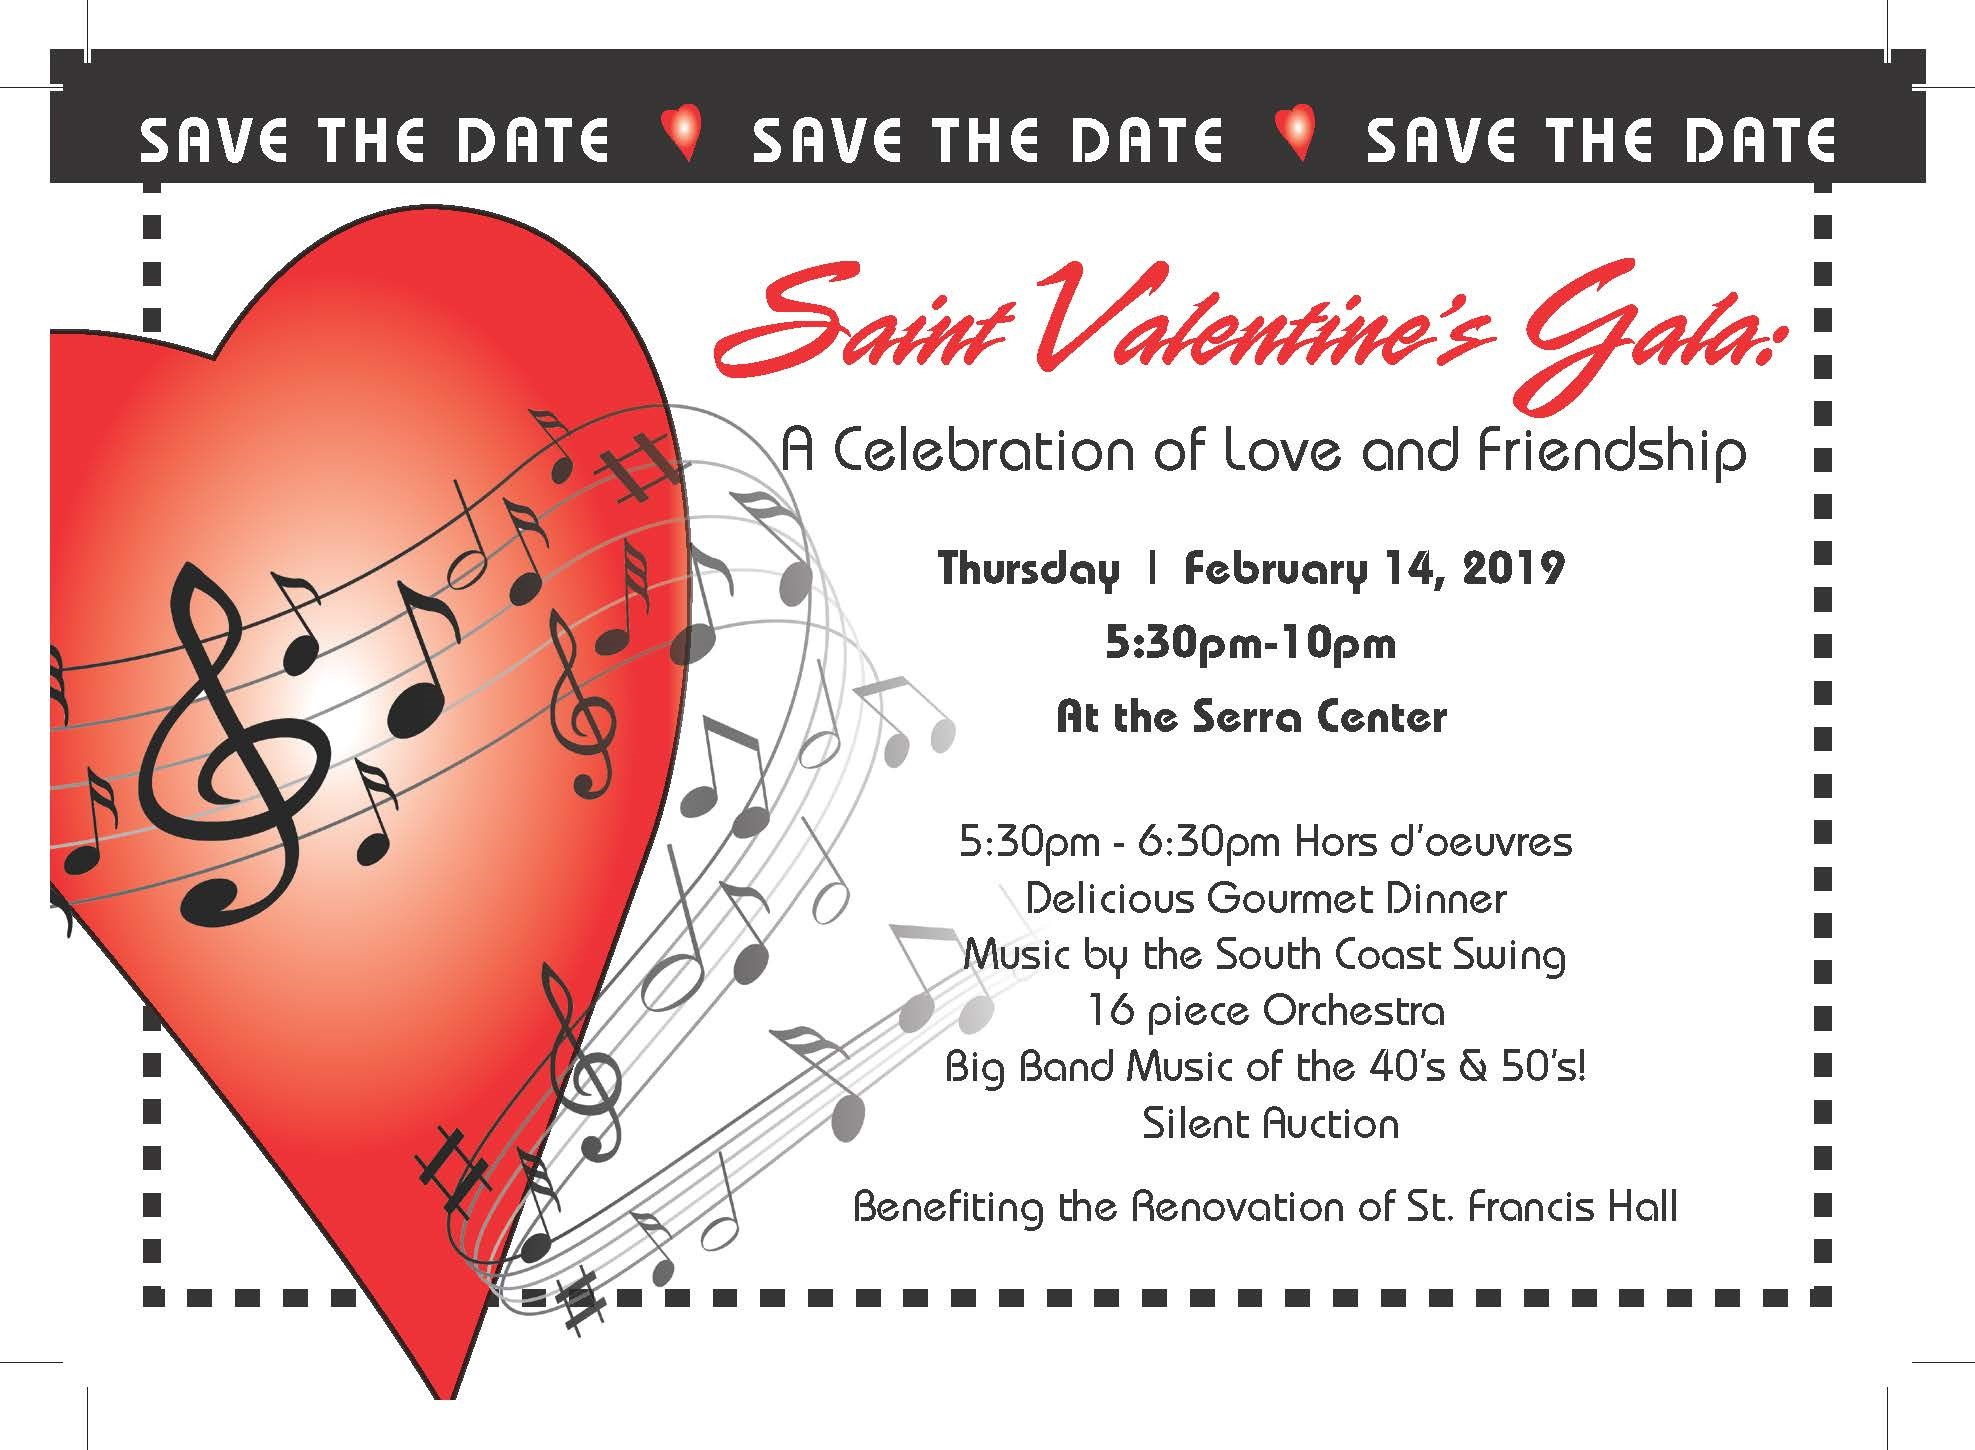 Saint Valentine's Gala Tickets On-Sale This Weekend